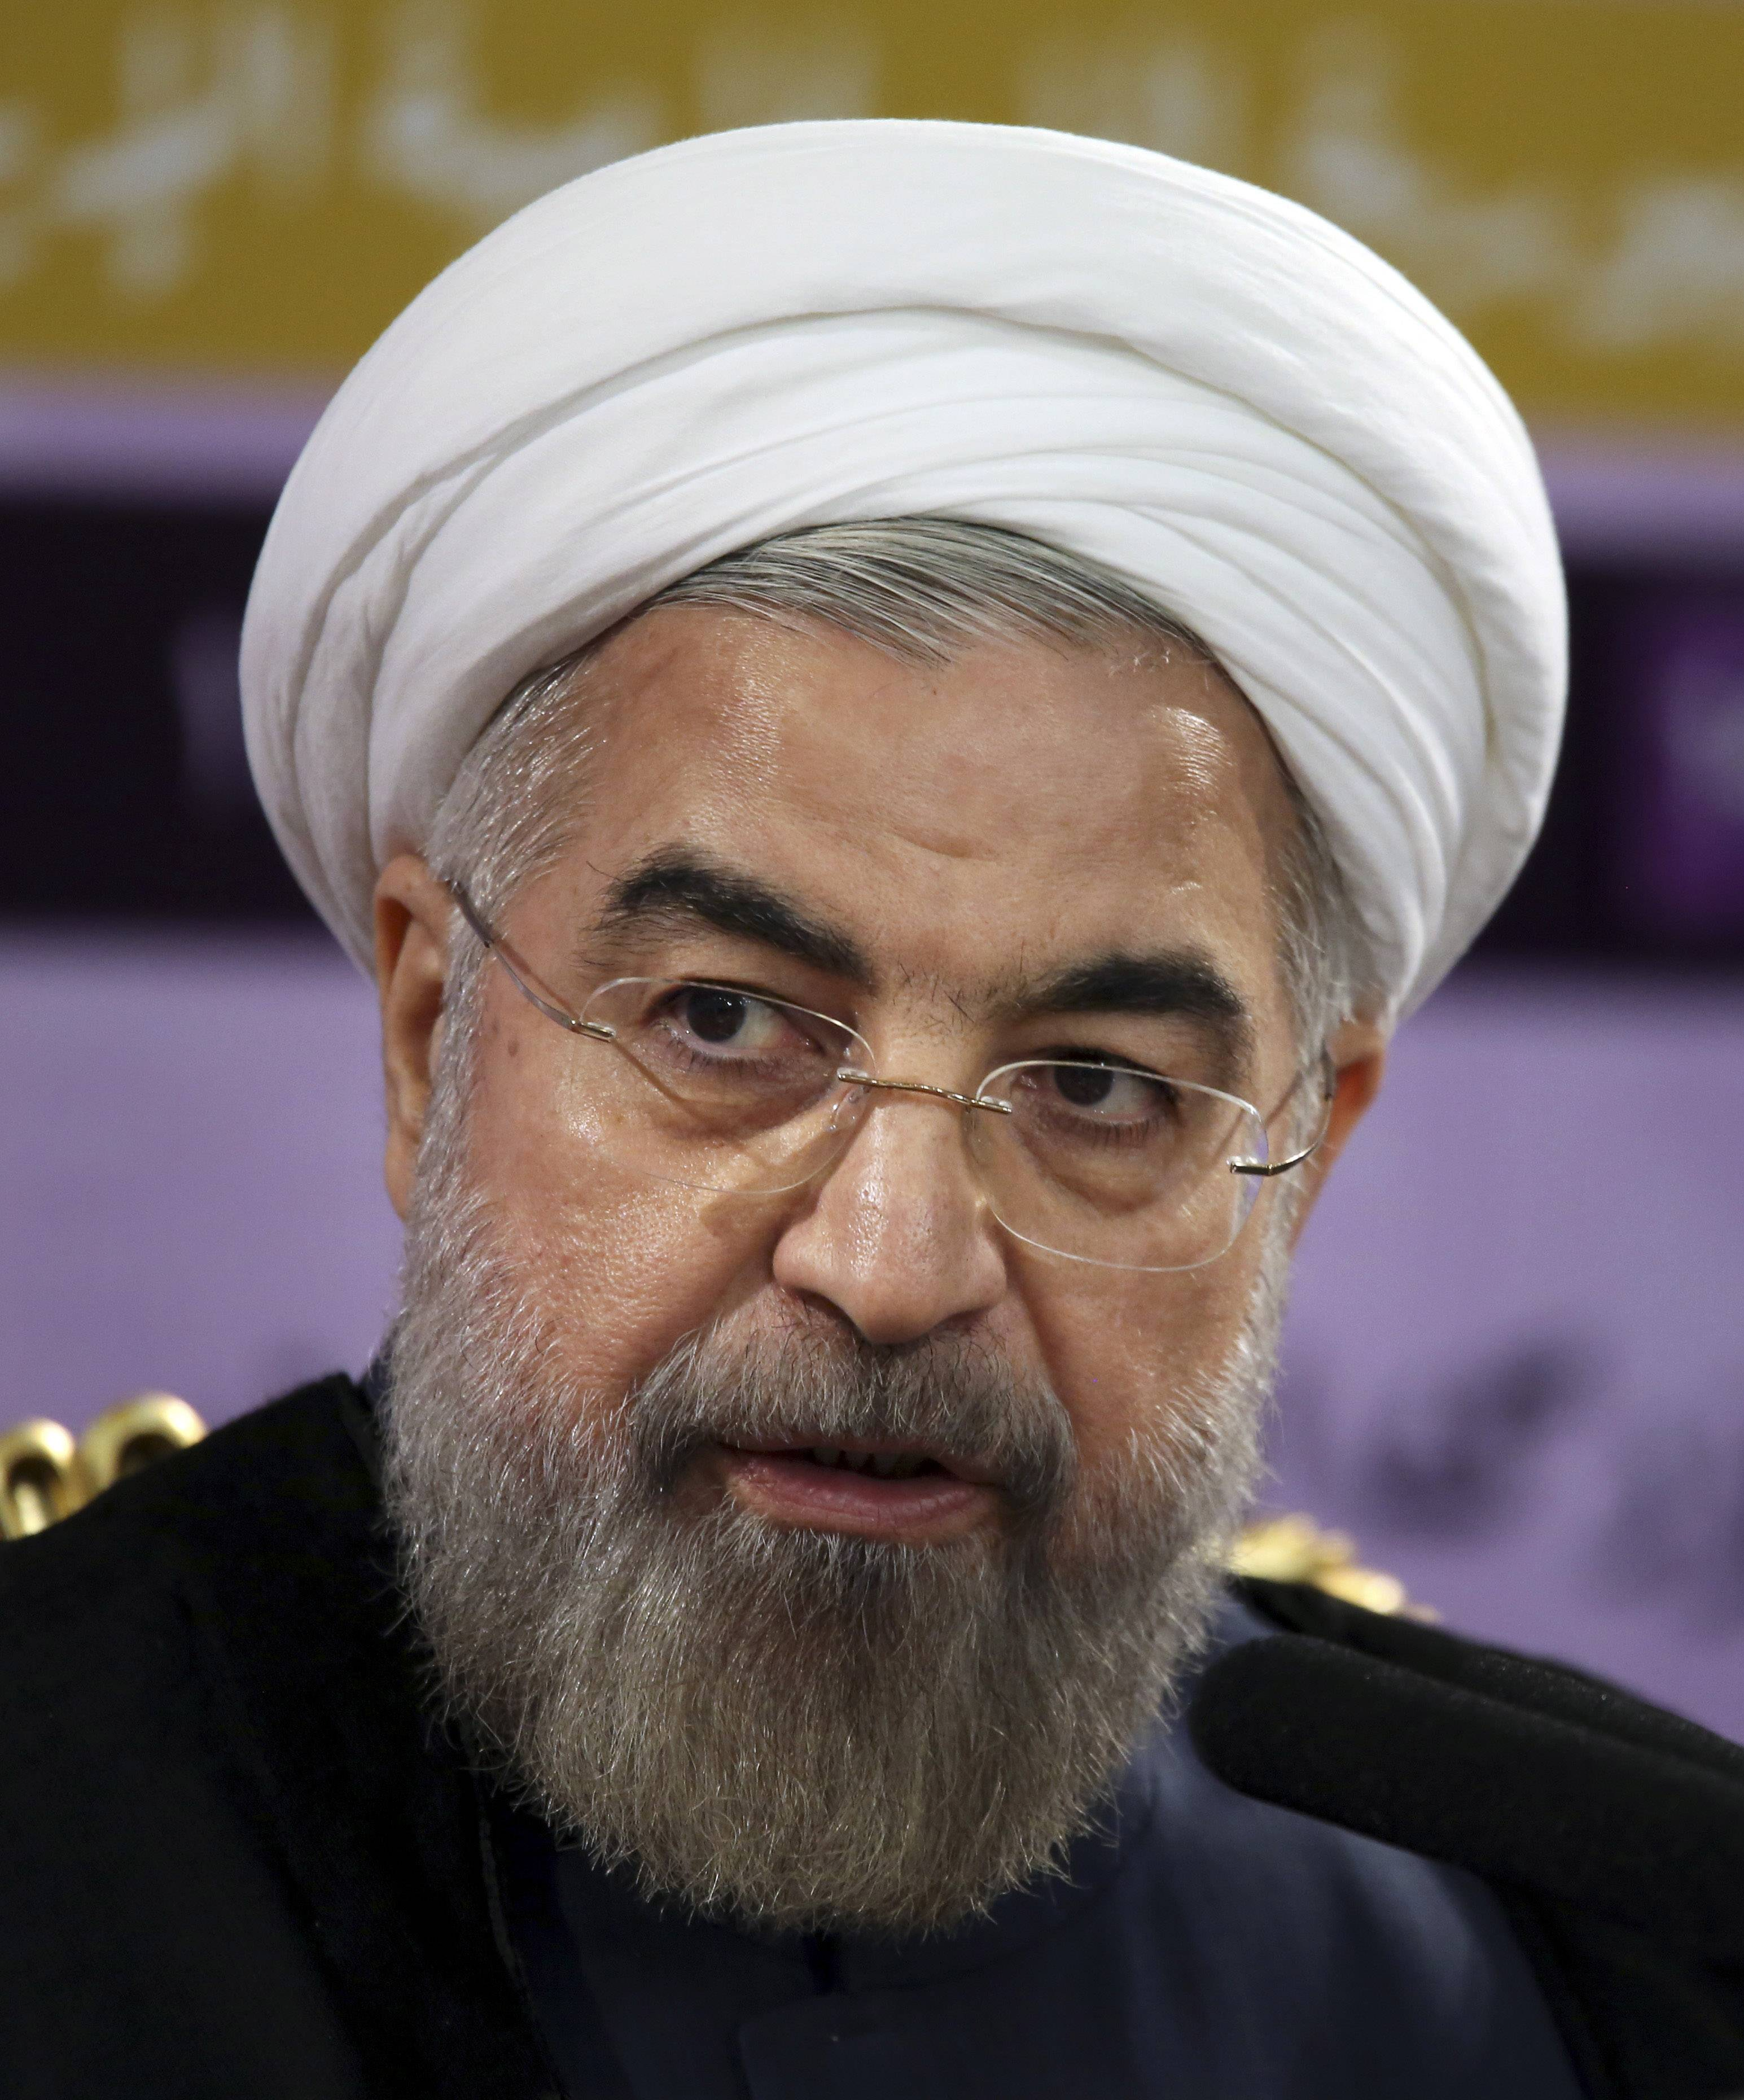 Iranian President Hassan Rouhani speaks during a press conference in Tehran, Iran, Saturday, June 14. Rouhani says the international sanctions regime has crumbled and will not be rebuilt even if Iran and world powers fail to reach a final nuclear deal by a July 20 deadline. Iran and the five permanent members of the U.N. Security Council plus Germany reached an interim deal in November that limited Iran's uranium enrichment program in exchange for the easing of some sanctions.